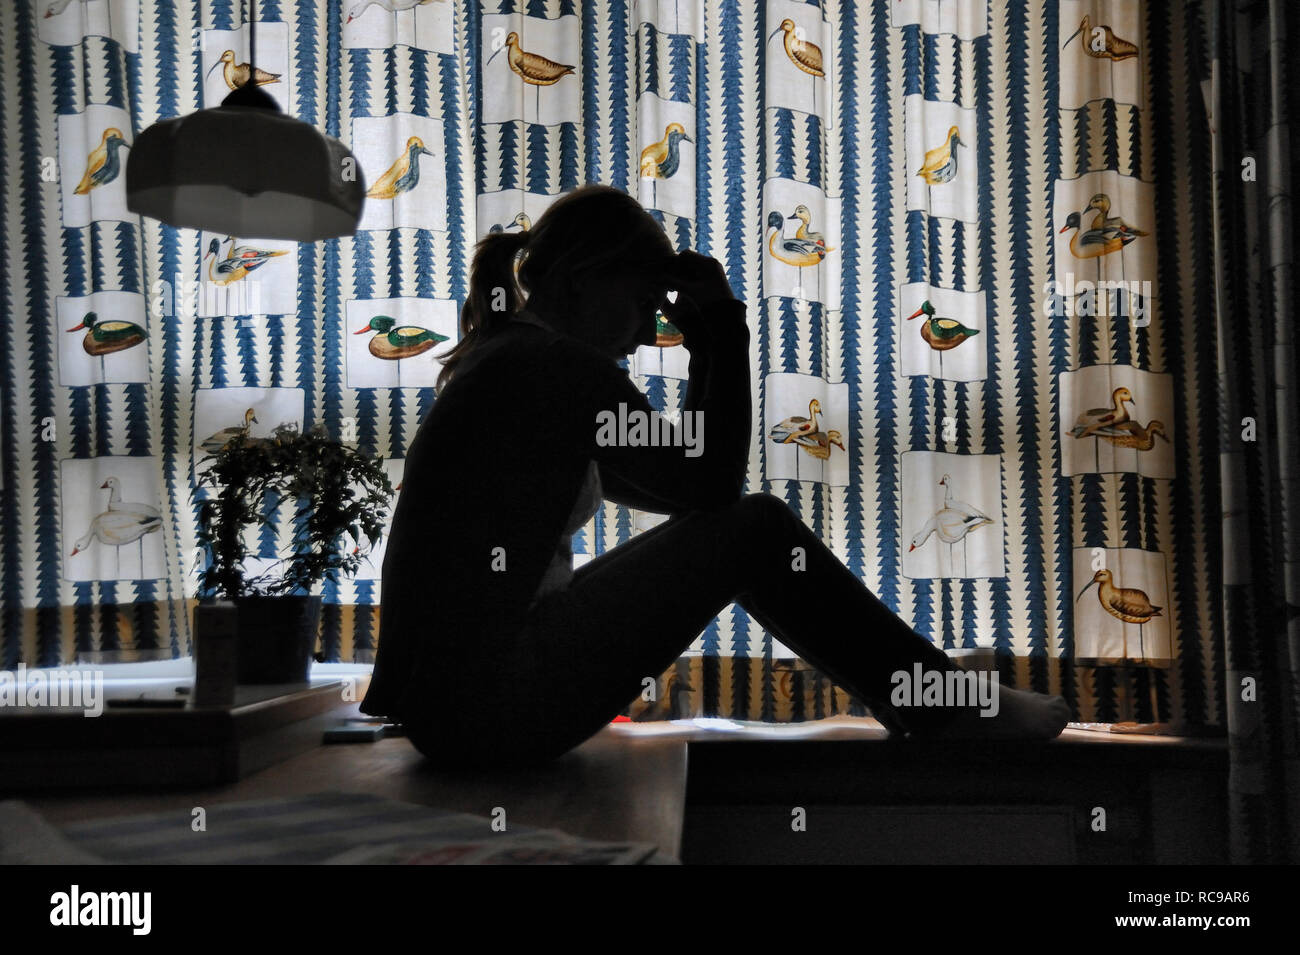 junge Frau nachdenklich, Silhouette | young woman thoughtfull, silhouette - Stock Image